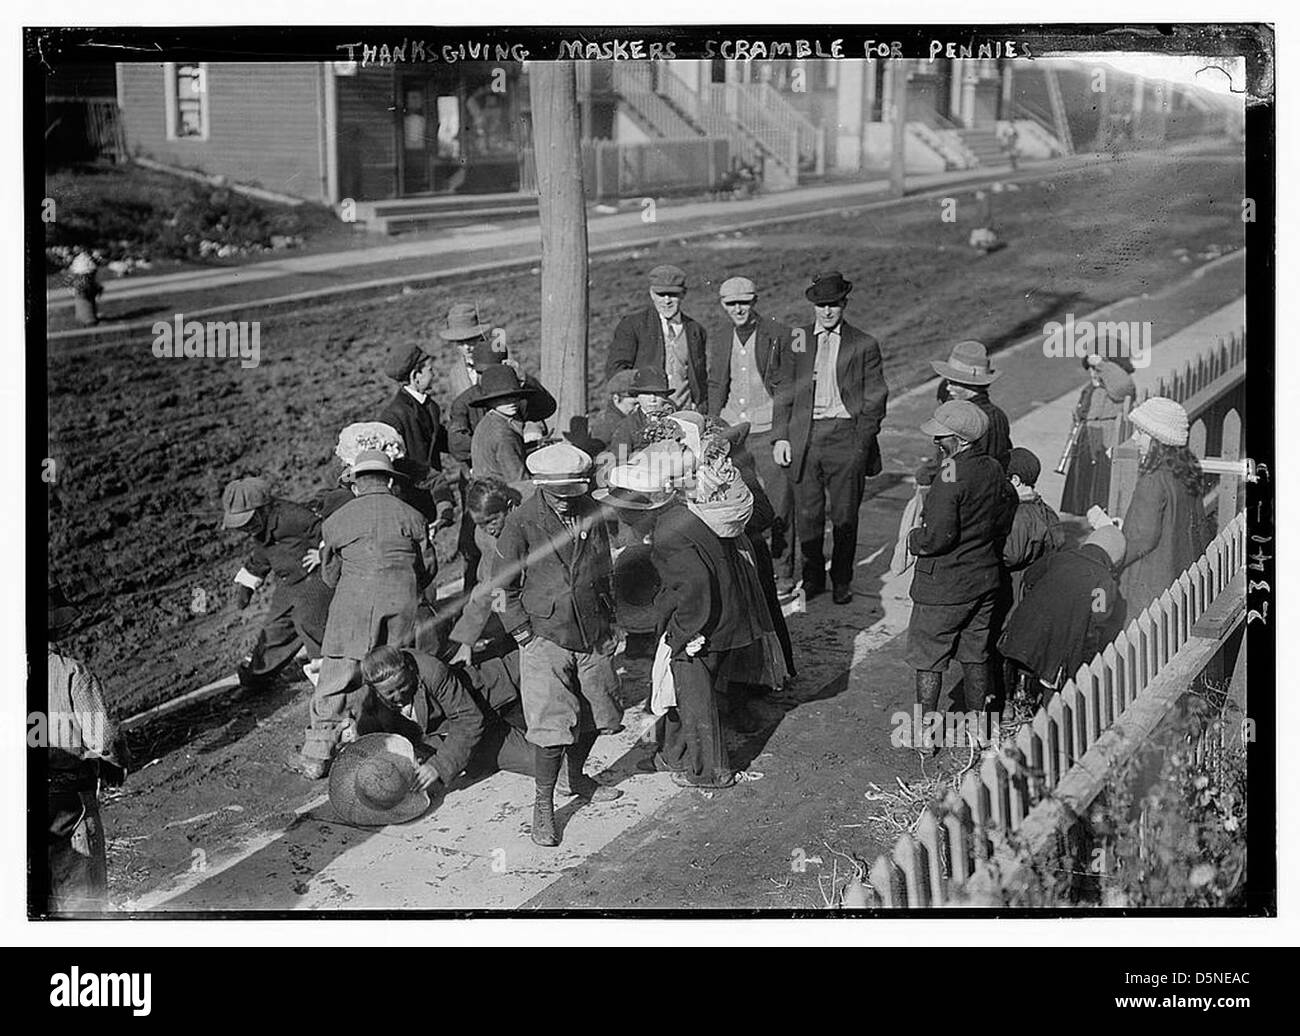 Thanksgiving Maskers scramble for pennies (LOC) - Stock Image